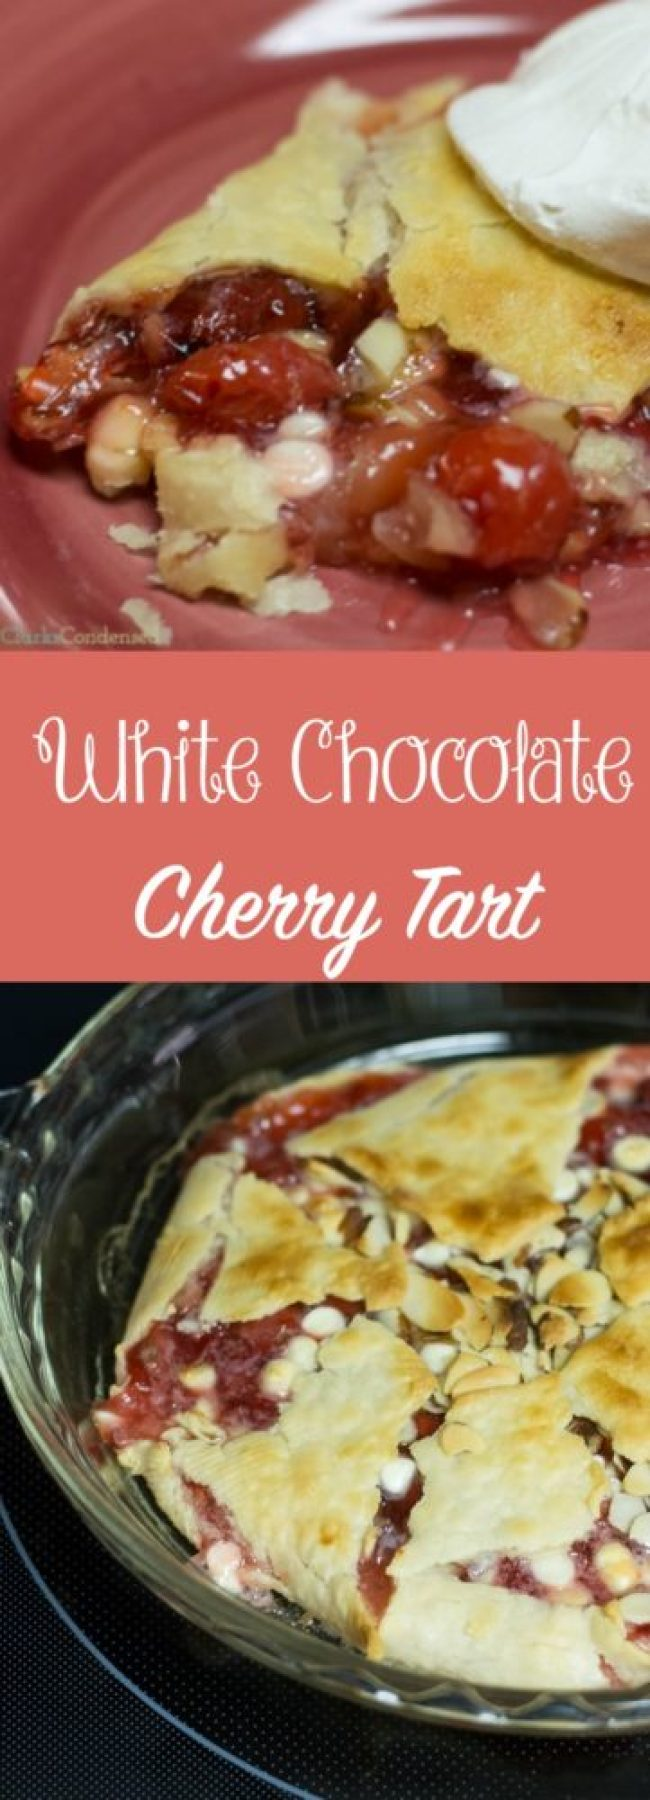 This white chocolate cherry tart recipe is SO easy and absolutely delicious. It's perfect for those nights where you need something sweet but don't feel like cooking up a storm!